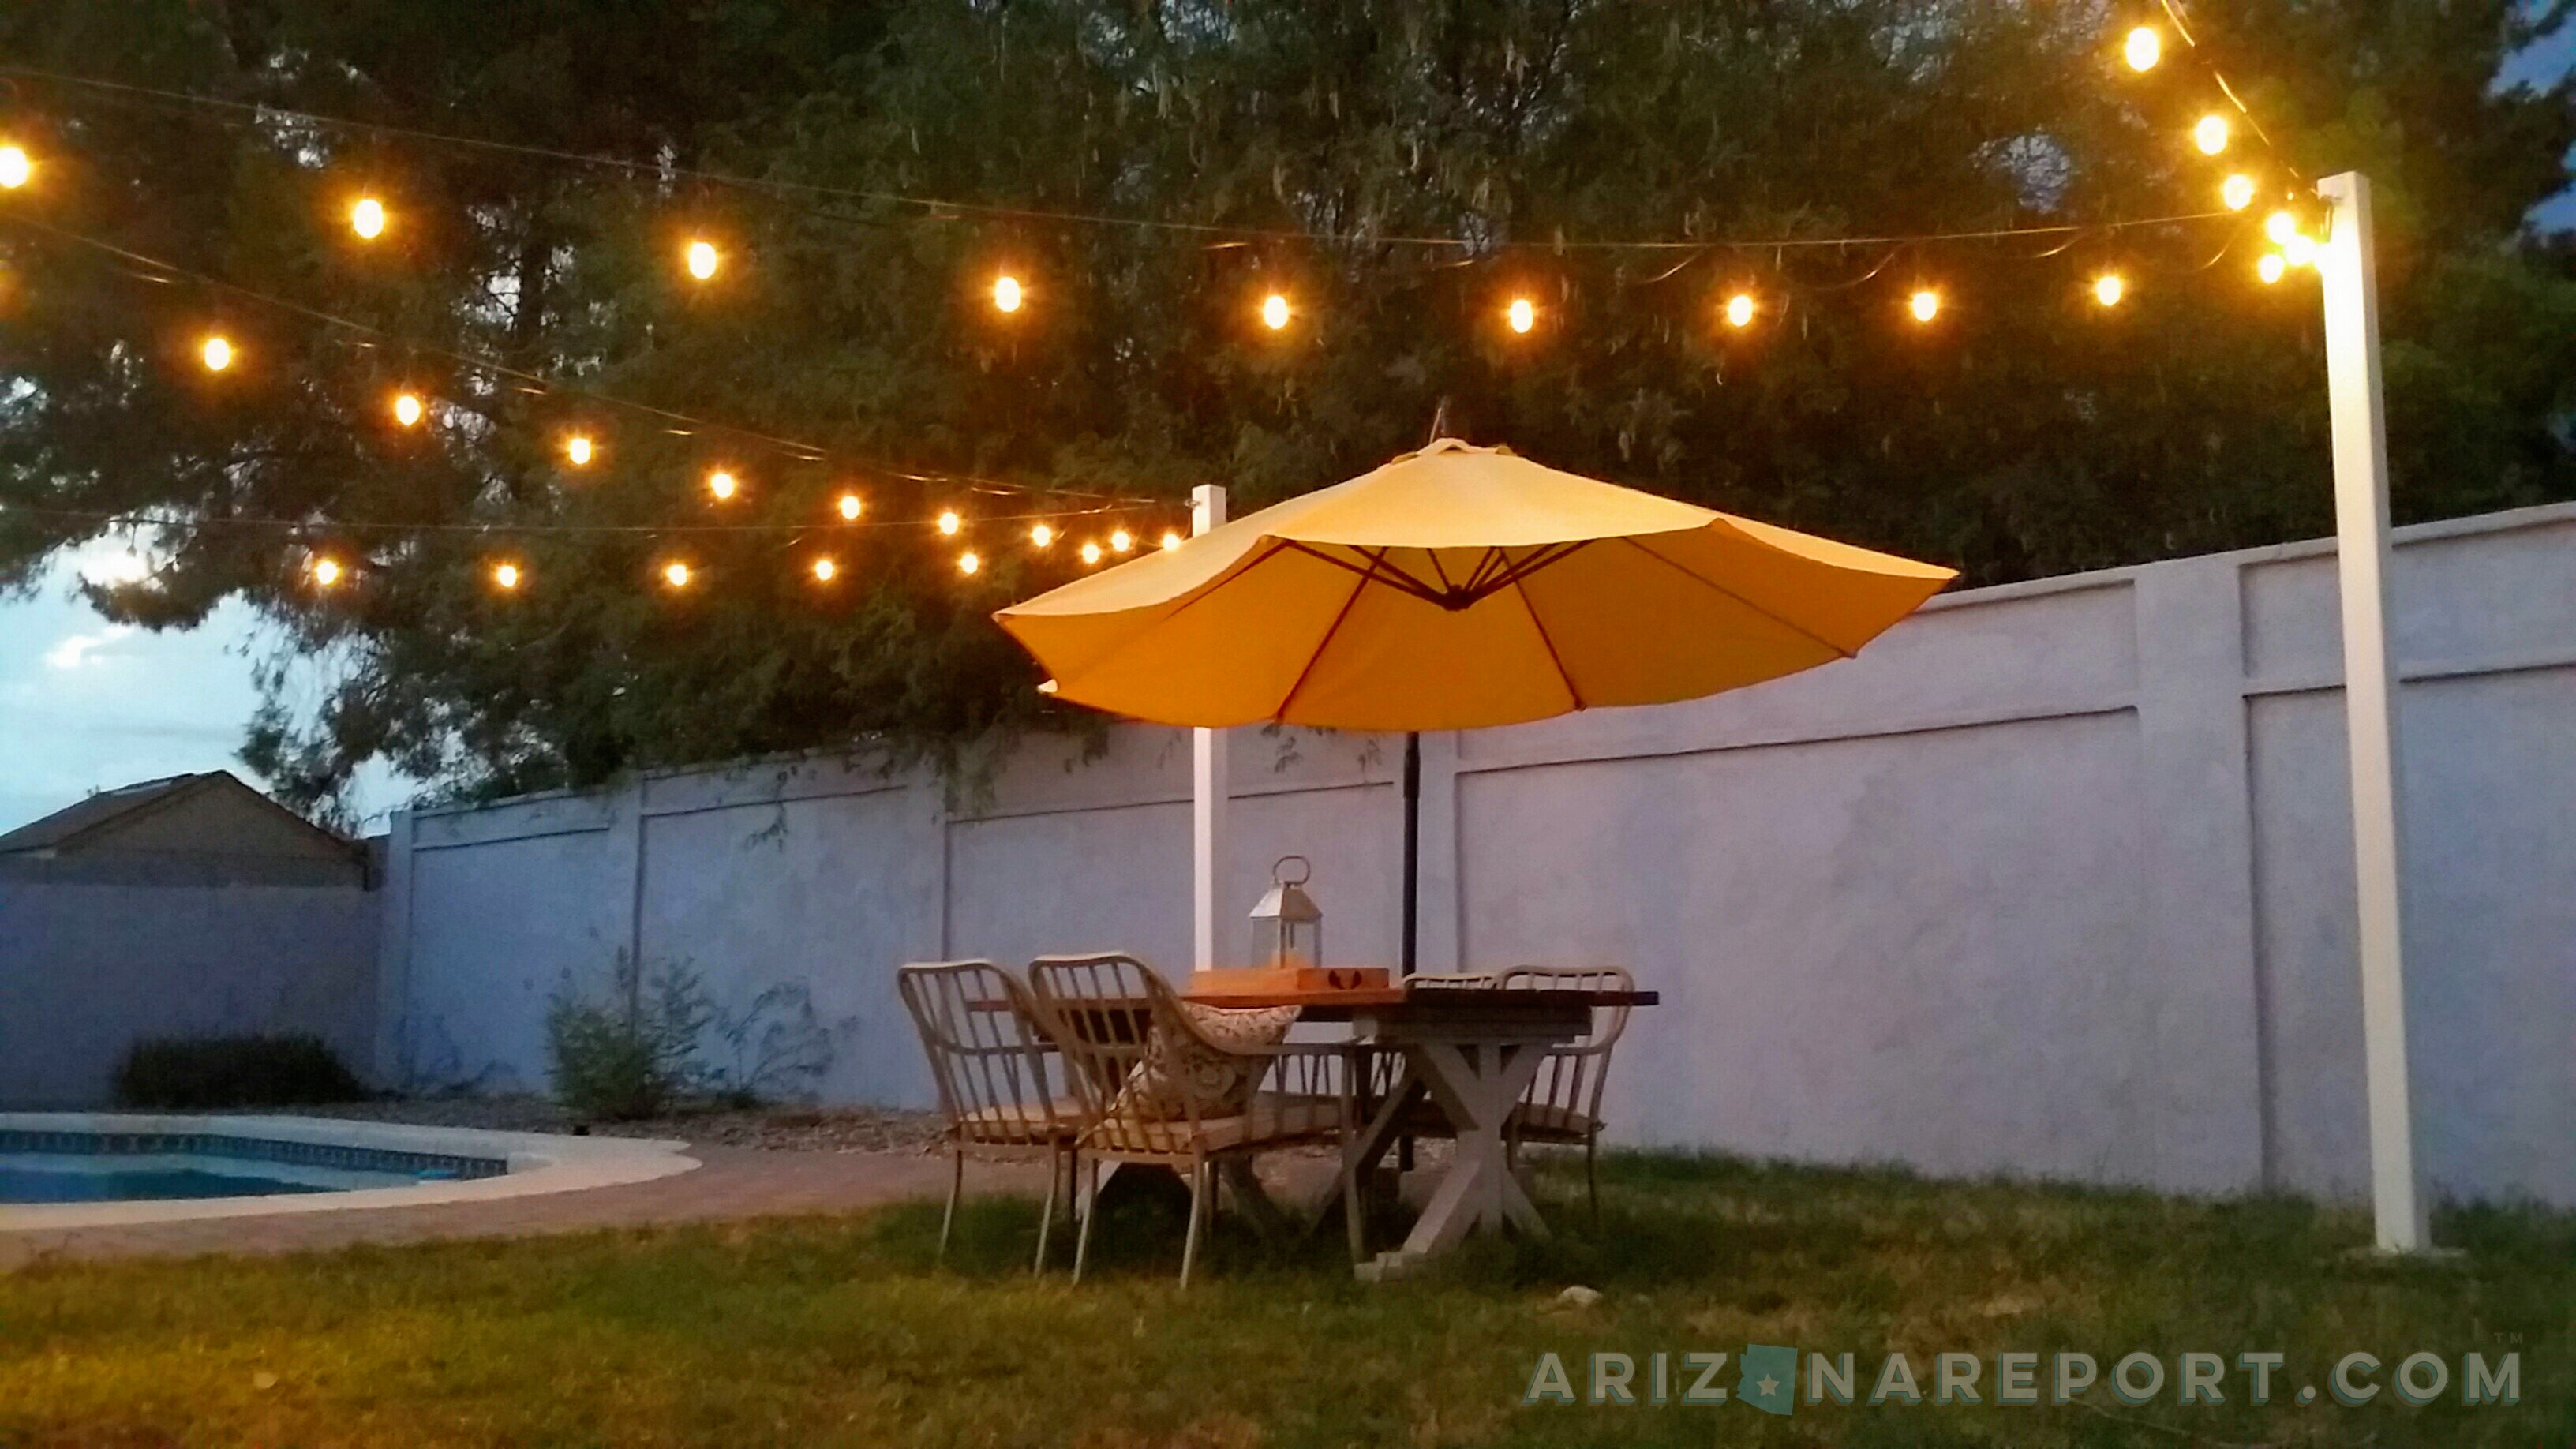 How to hang string lights and cafe lights the arizona report view larger image mozeypictures Gallery